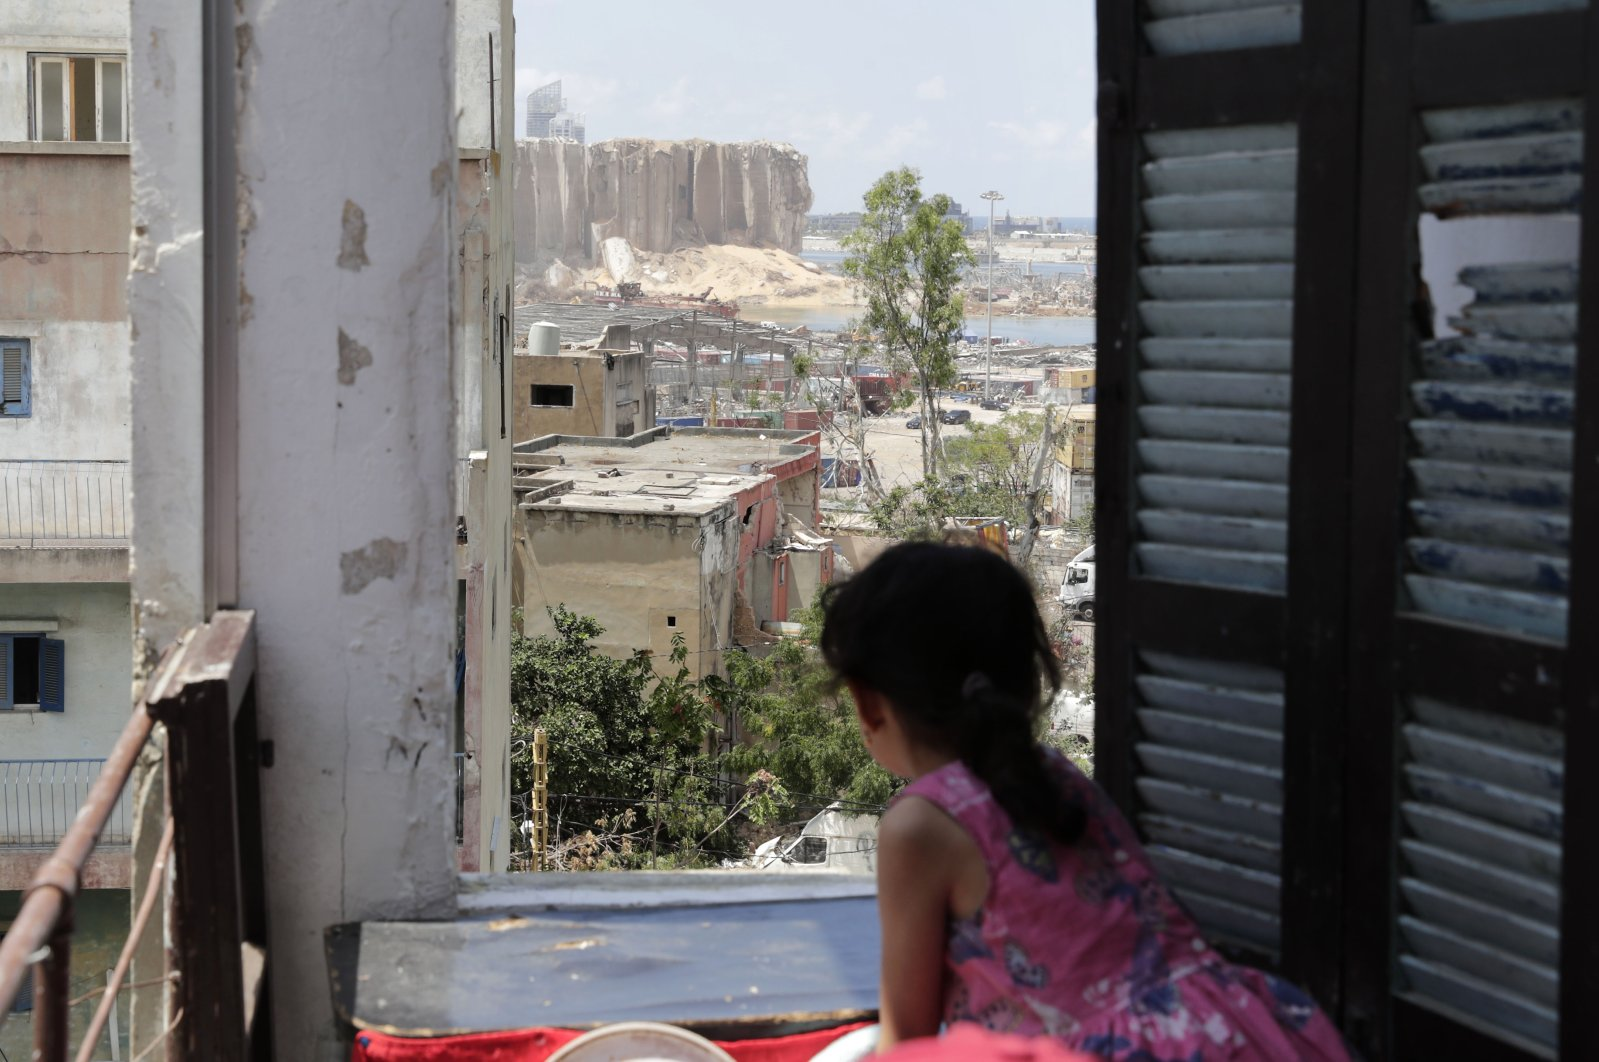 A girl stands at the window of her apartment overlooking the destroyed silo at the Port of Beirut following a huge chemical explosion that devastated large parts of the Lebanese capital last week, Aug. 11, 2020. (AFP Photo)